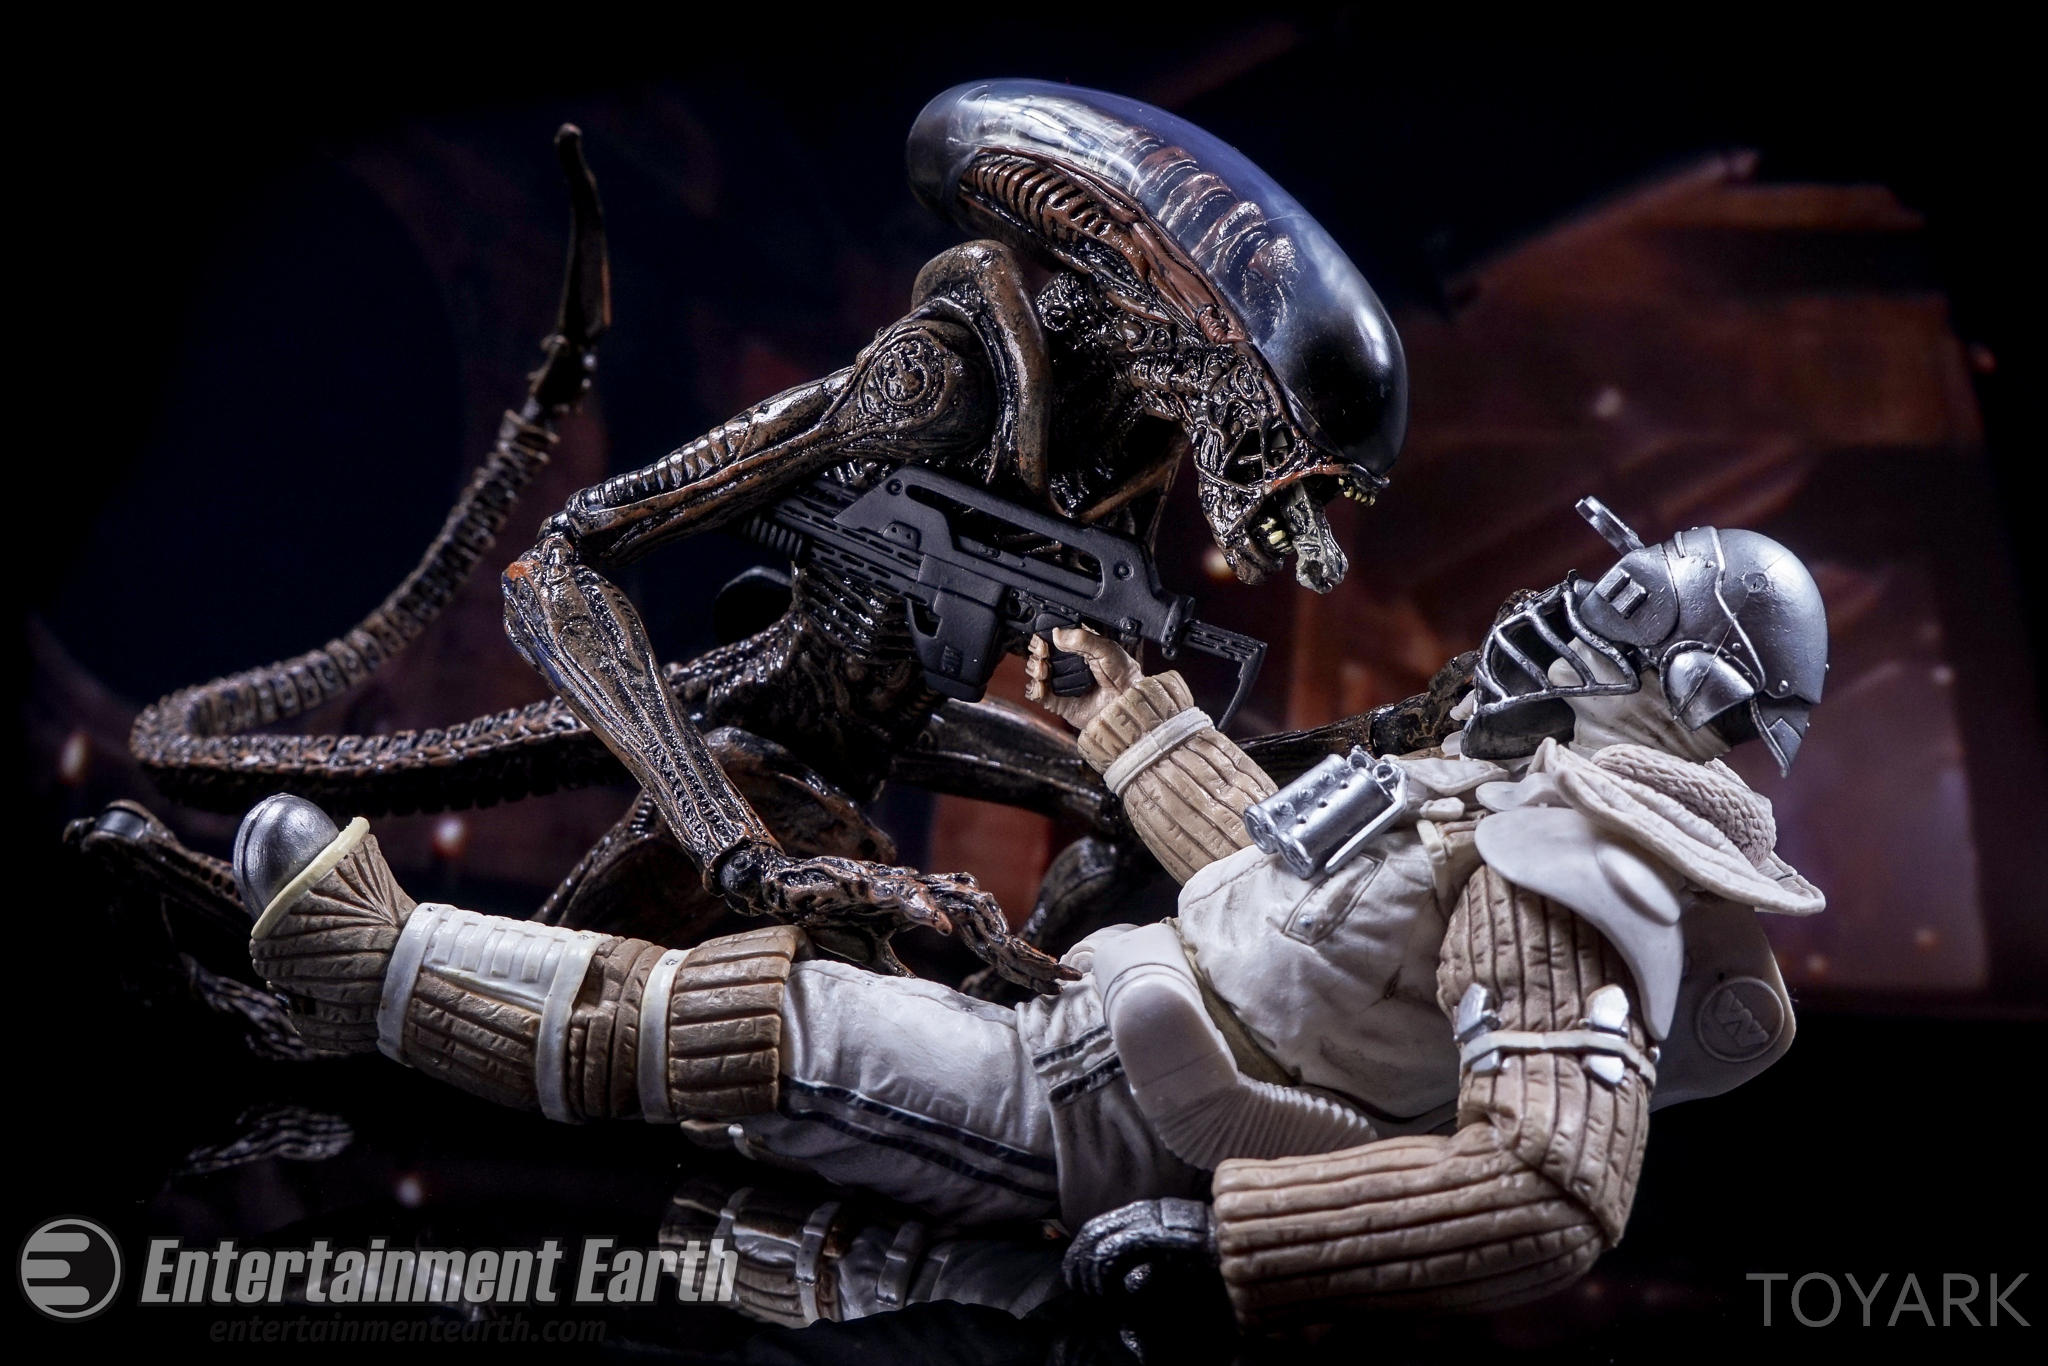 http://news.toyark.com/wp-content/uploads/sites/4/2016/07/Alien-Series-8-NECA-092.jpg